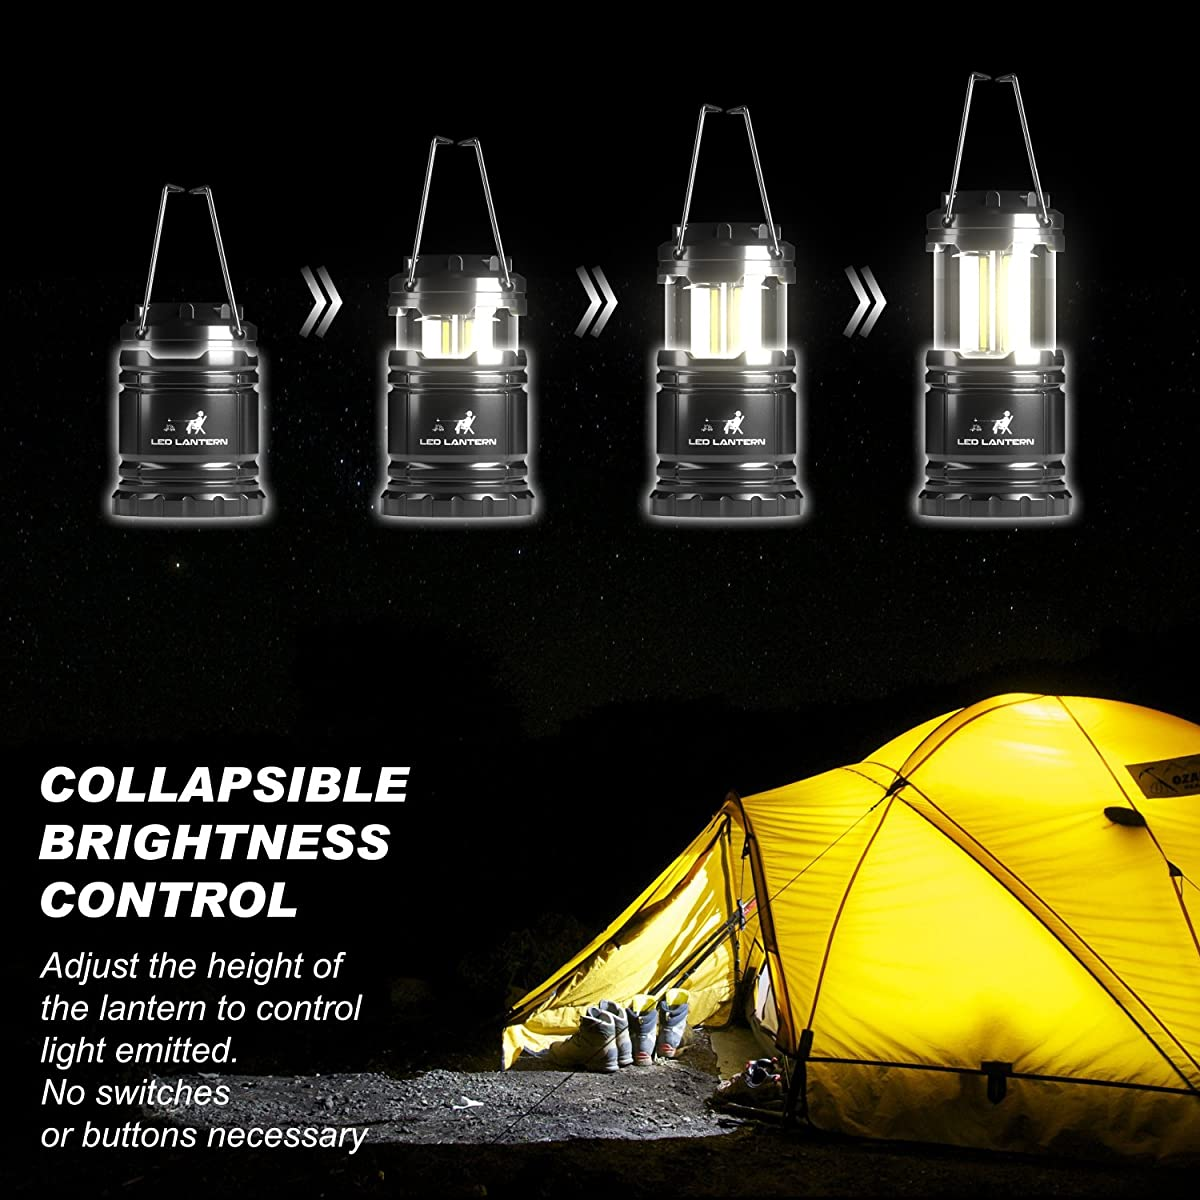 MalloMe LED Camping Lantern Flashlights 2 Pack - SUPER BRIGHT - 350 Lumen Portable Outdoor Lights with 6 AA Batteries (Black, Collapsible)